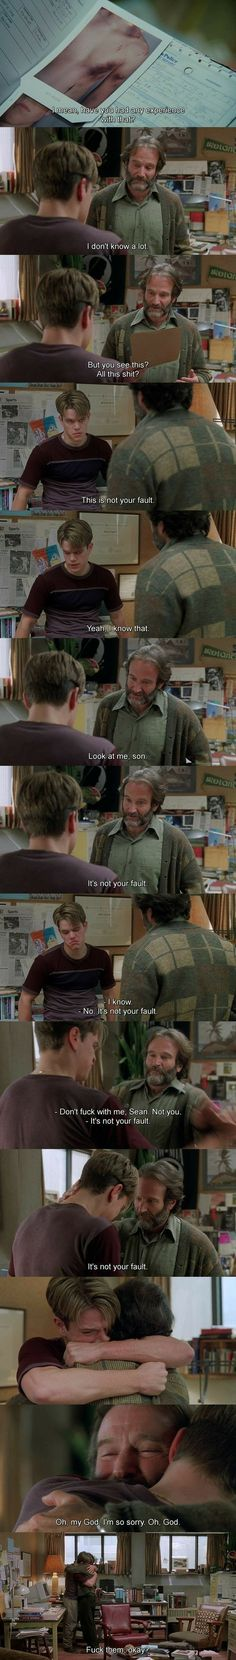 Good Will Hunting, one of the best movies in existence [I legitimately feel anger when people do Good Will Hunting-bashing - I completely adore it. Sad Movies, Series Movies, Great Movies, Film Movie, Cinema Quotes, Film Quotes, Good Will Hunting Quotes, Movies Showing, Movies And Tv Shows